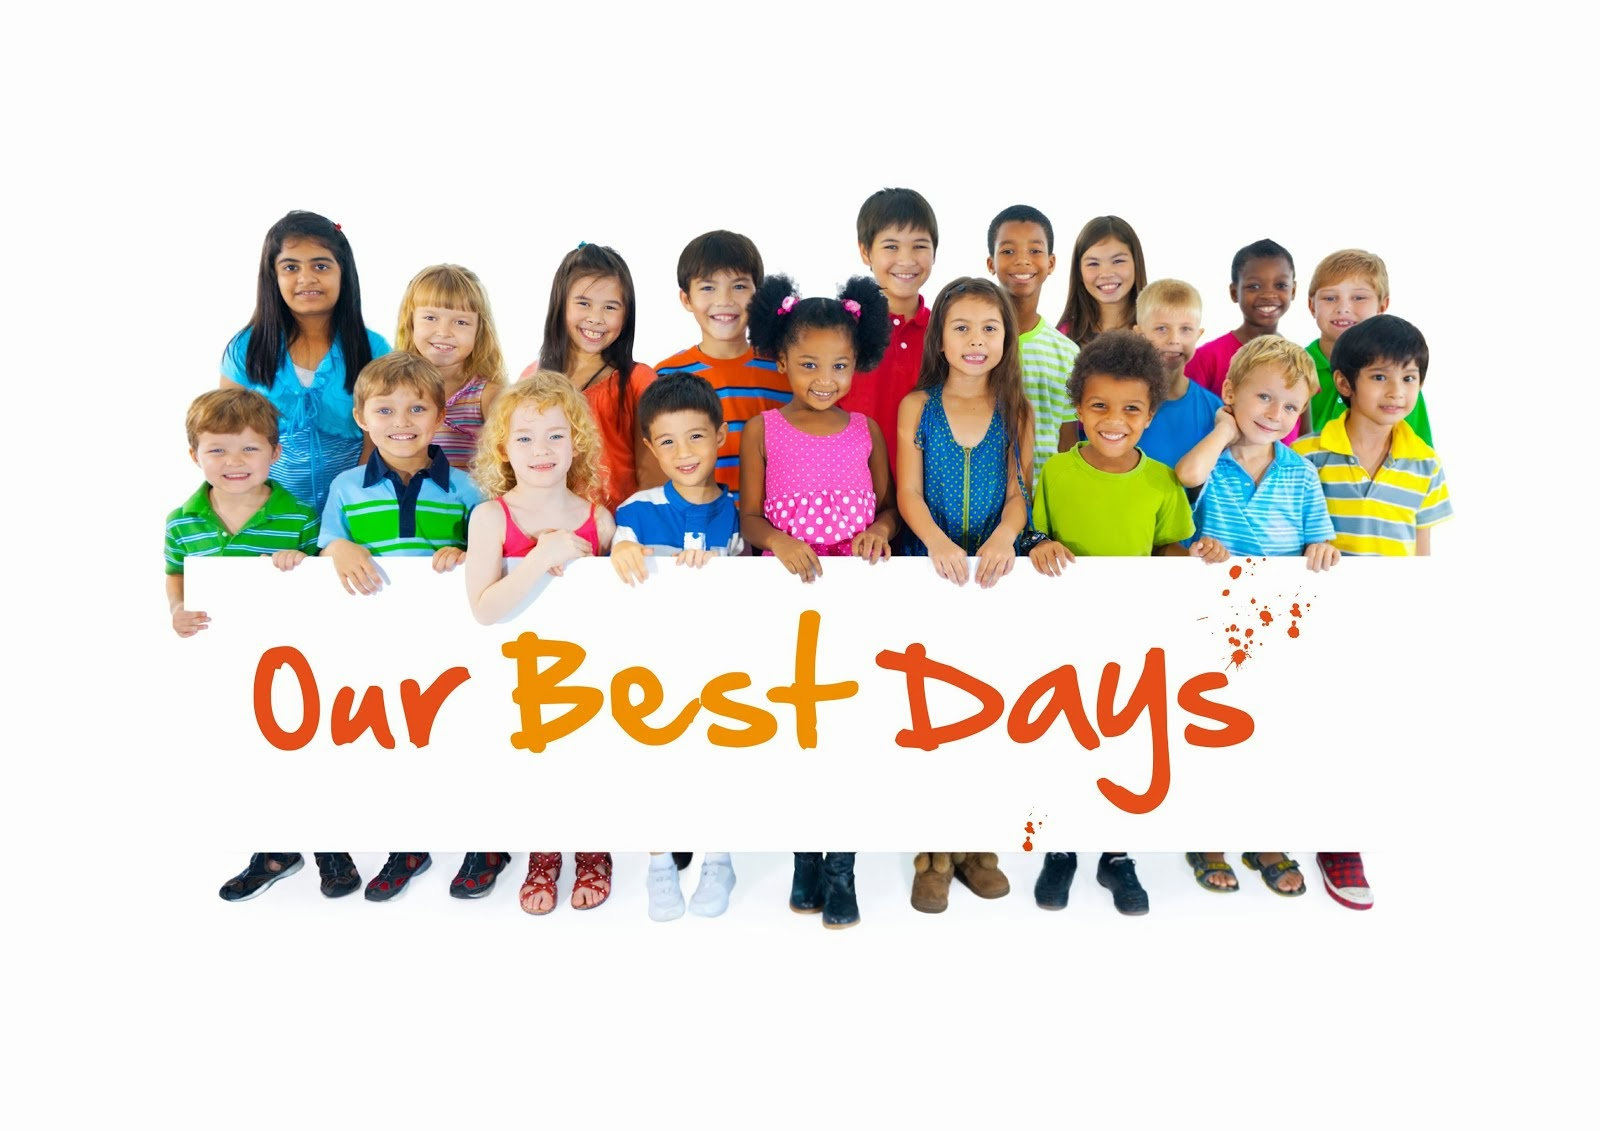 Give a child some of their best days